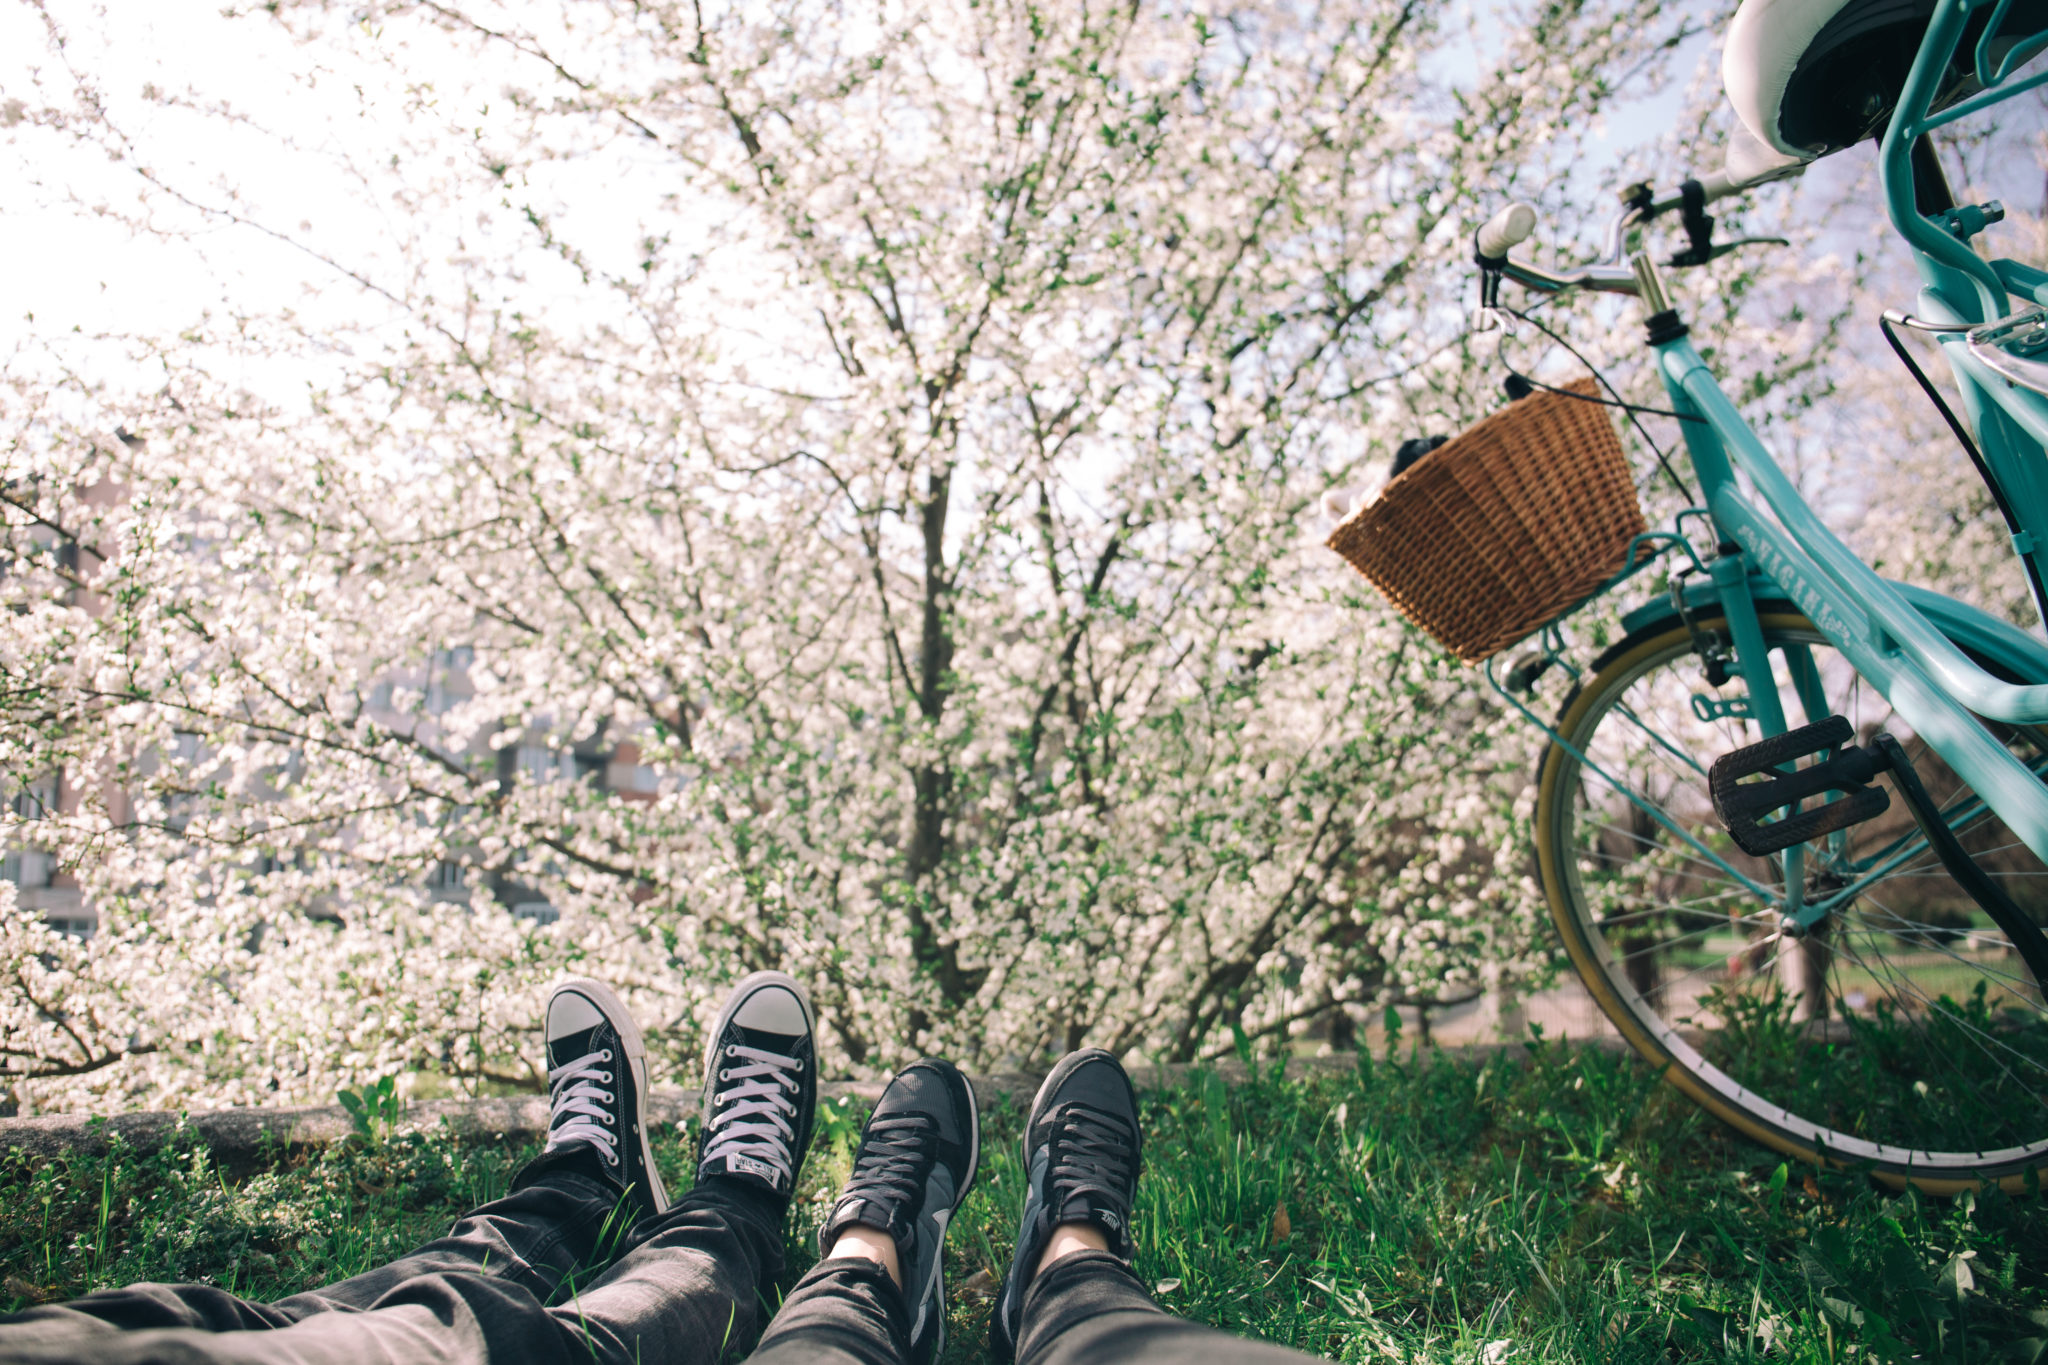 Bicycle Date Ideas